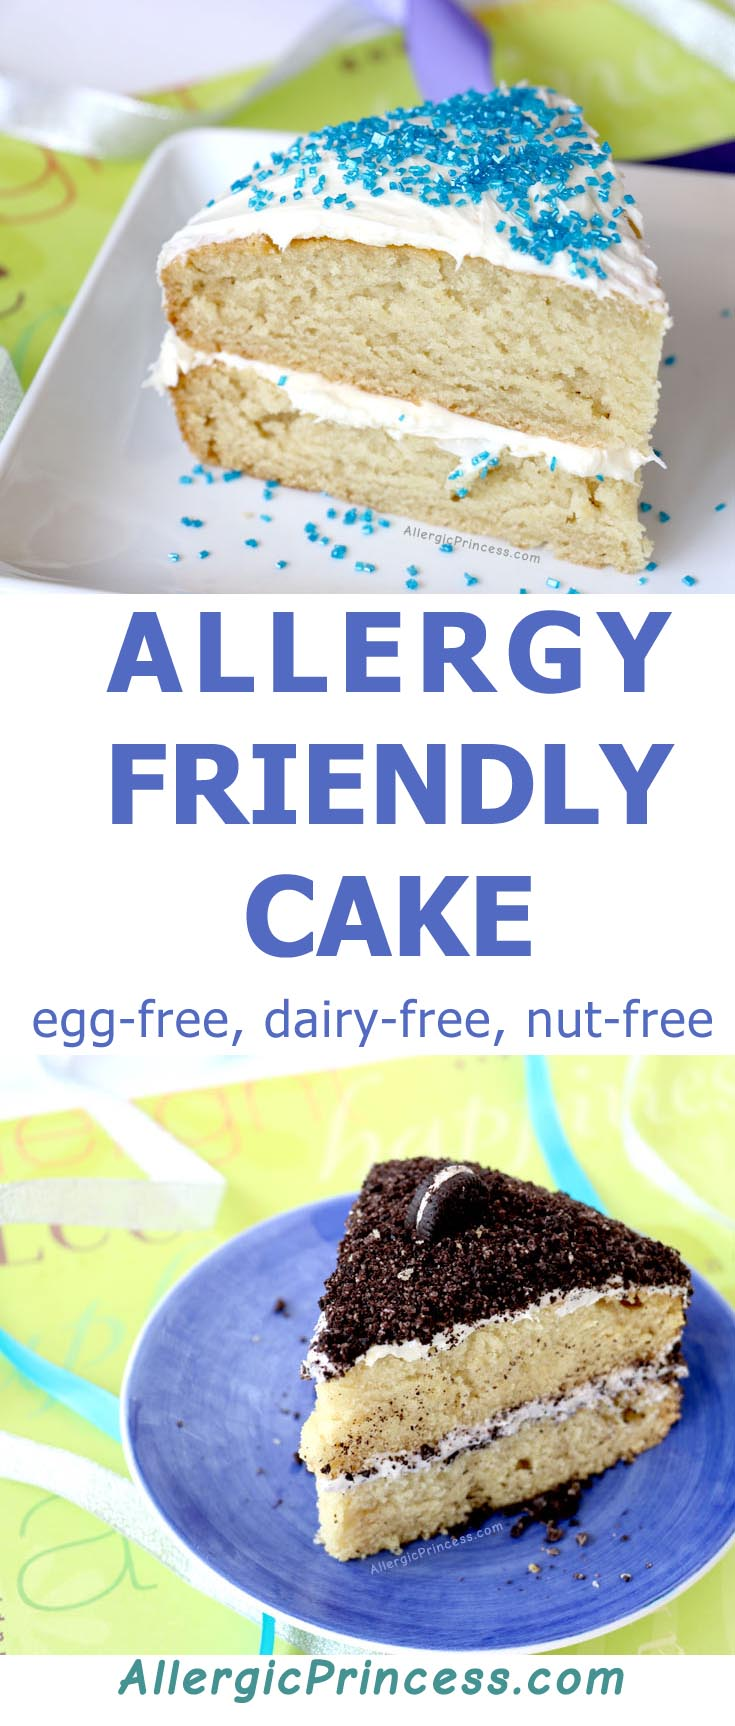 Allergy friendly cake that is egg-free, dairy-free, nut-free.